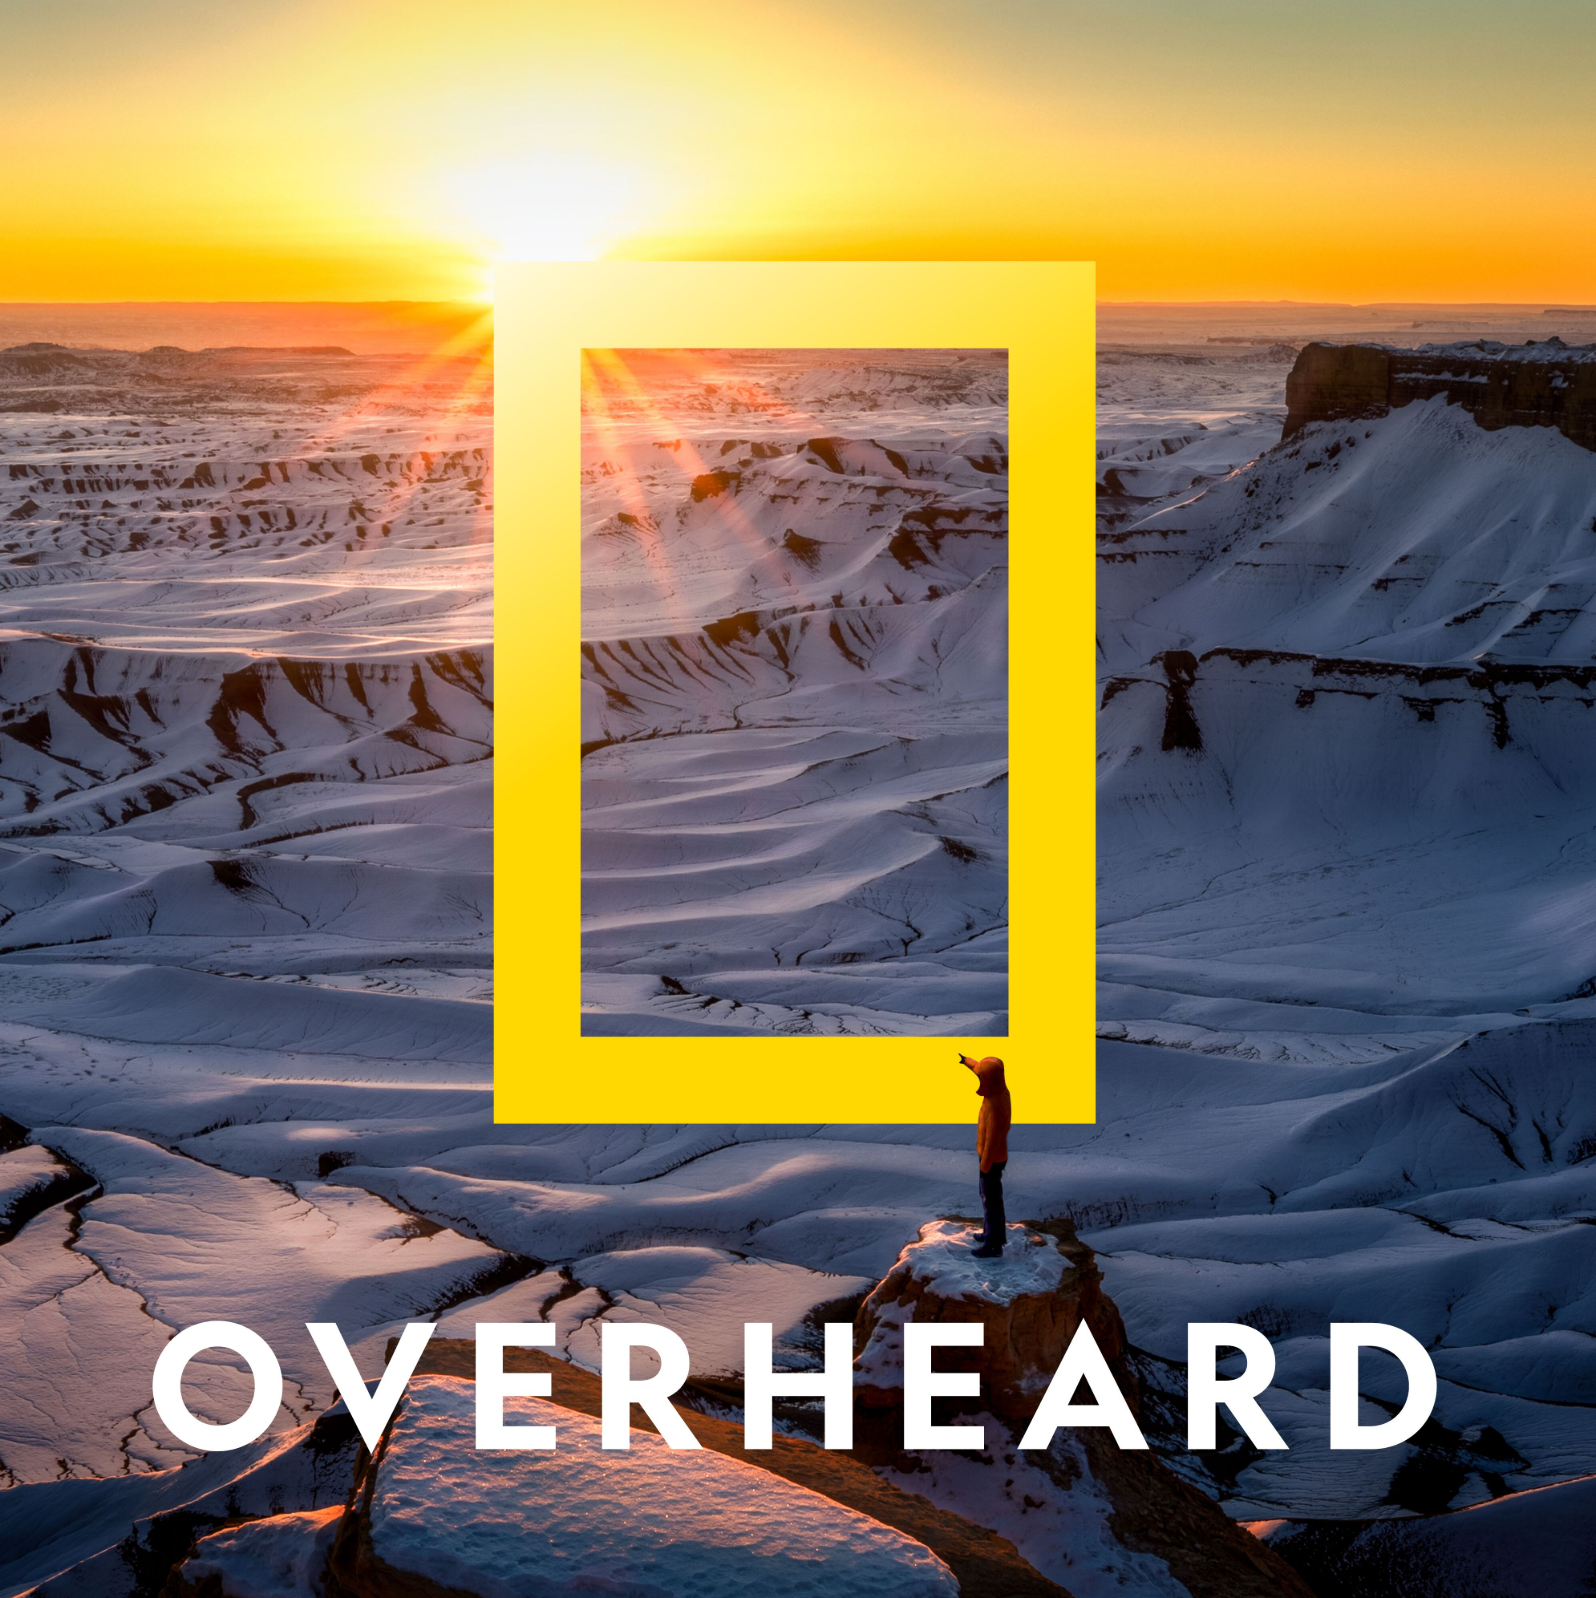 National Geographic Announces Second Season of 'Overheard at National Geographic' Podcast